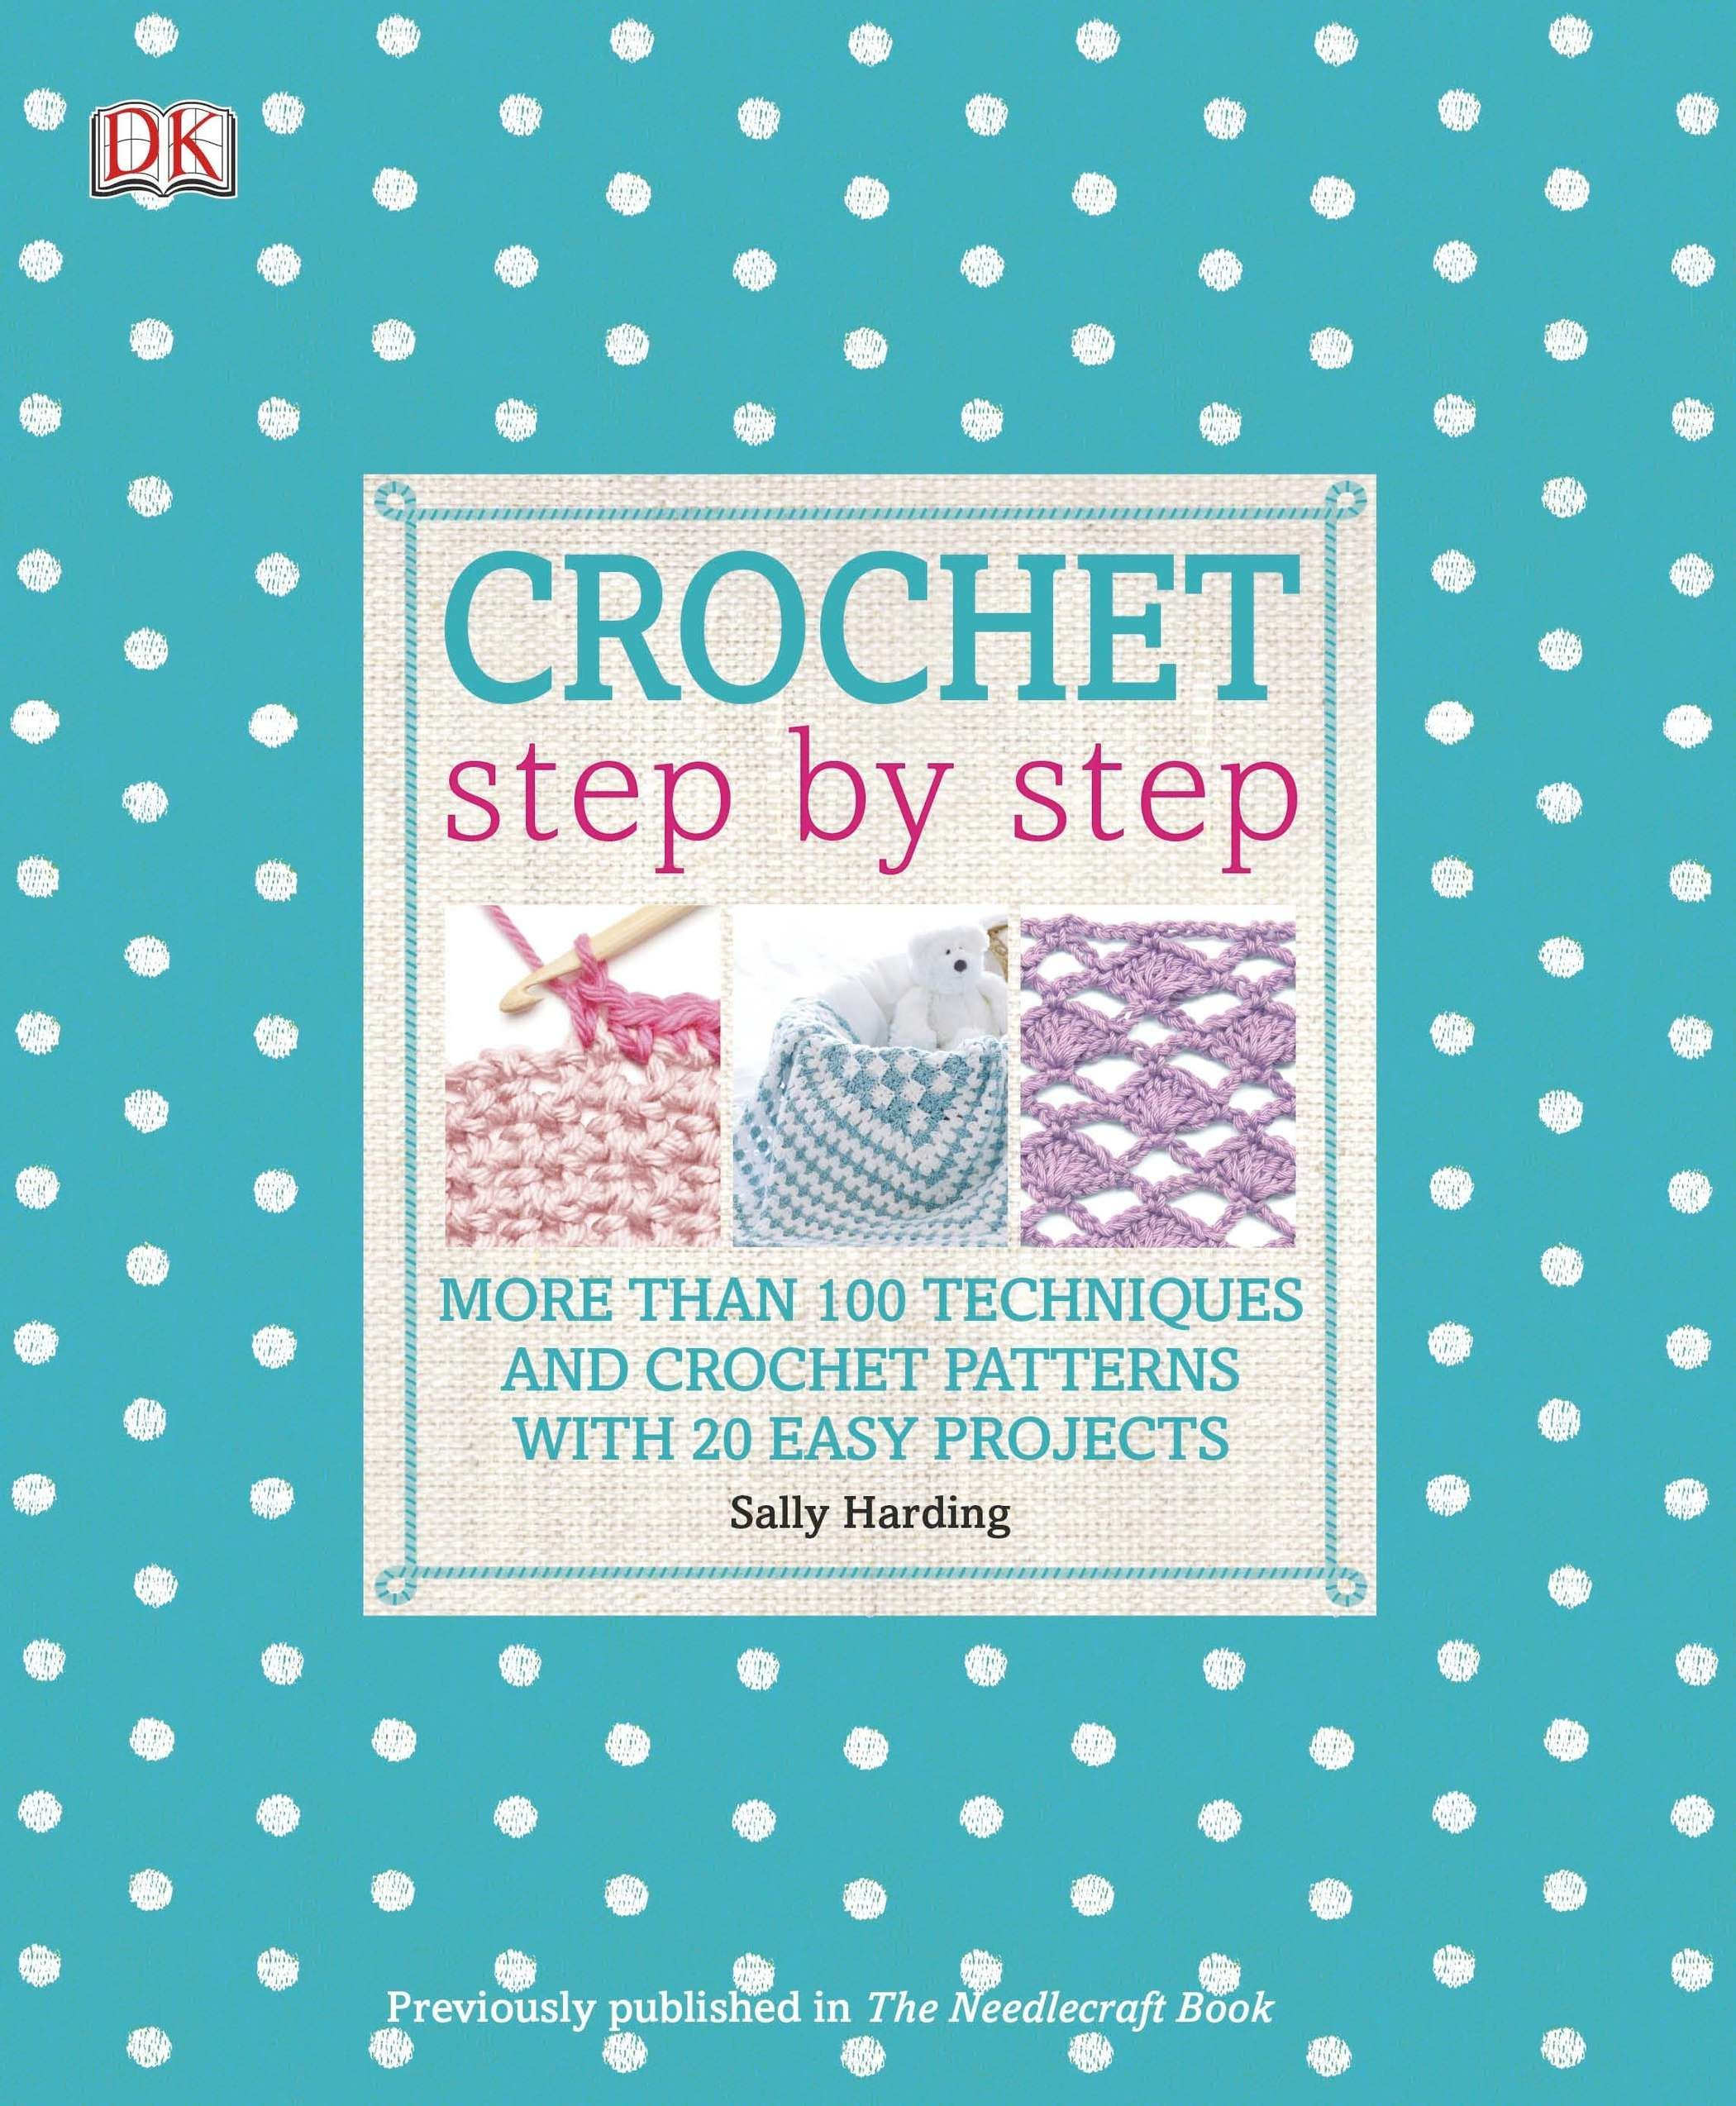 Crochet Step Techniques Patterns Projects product image